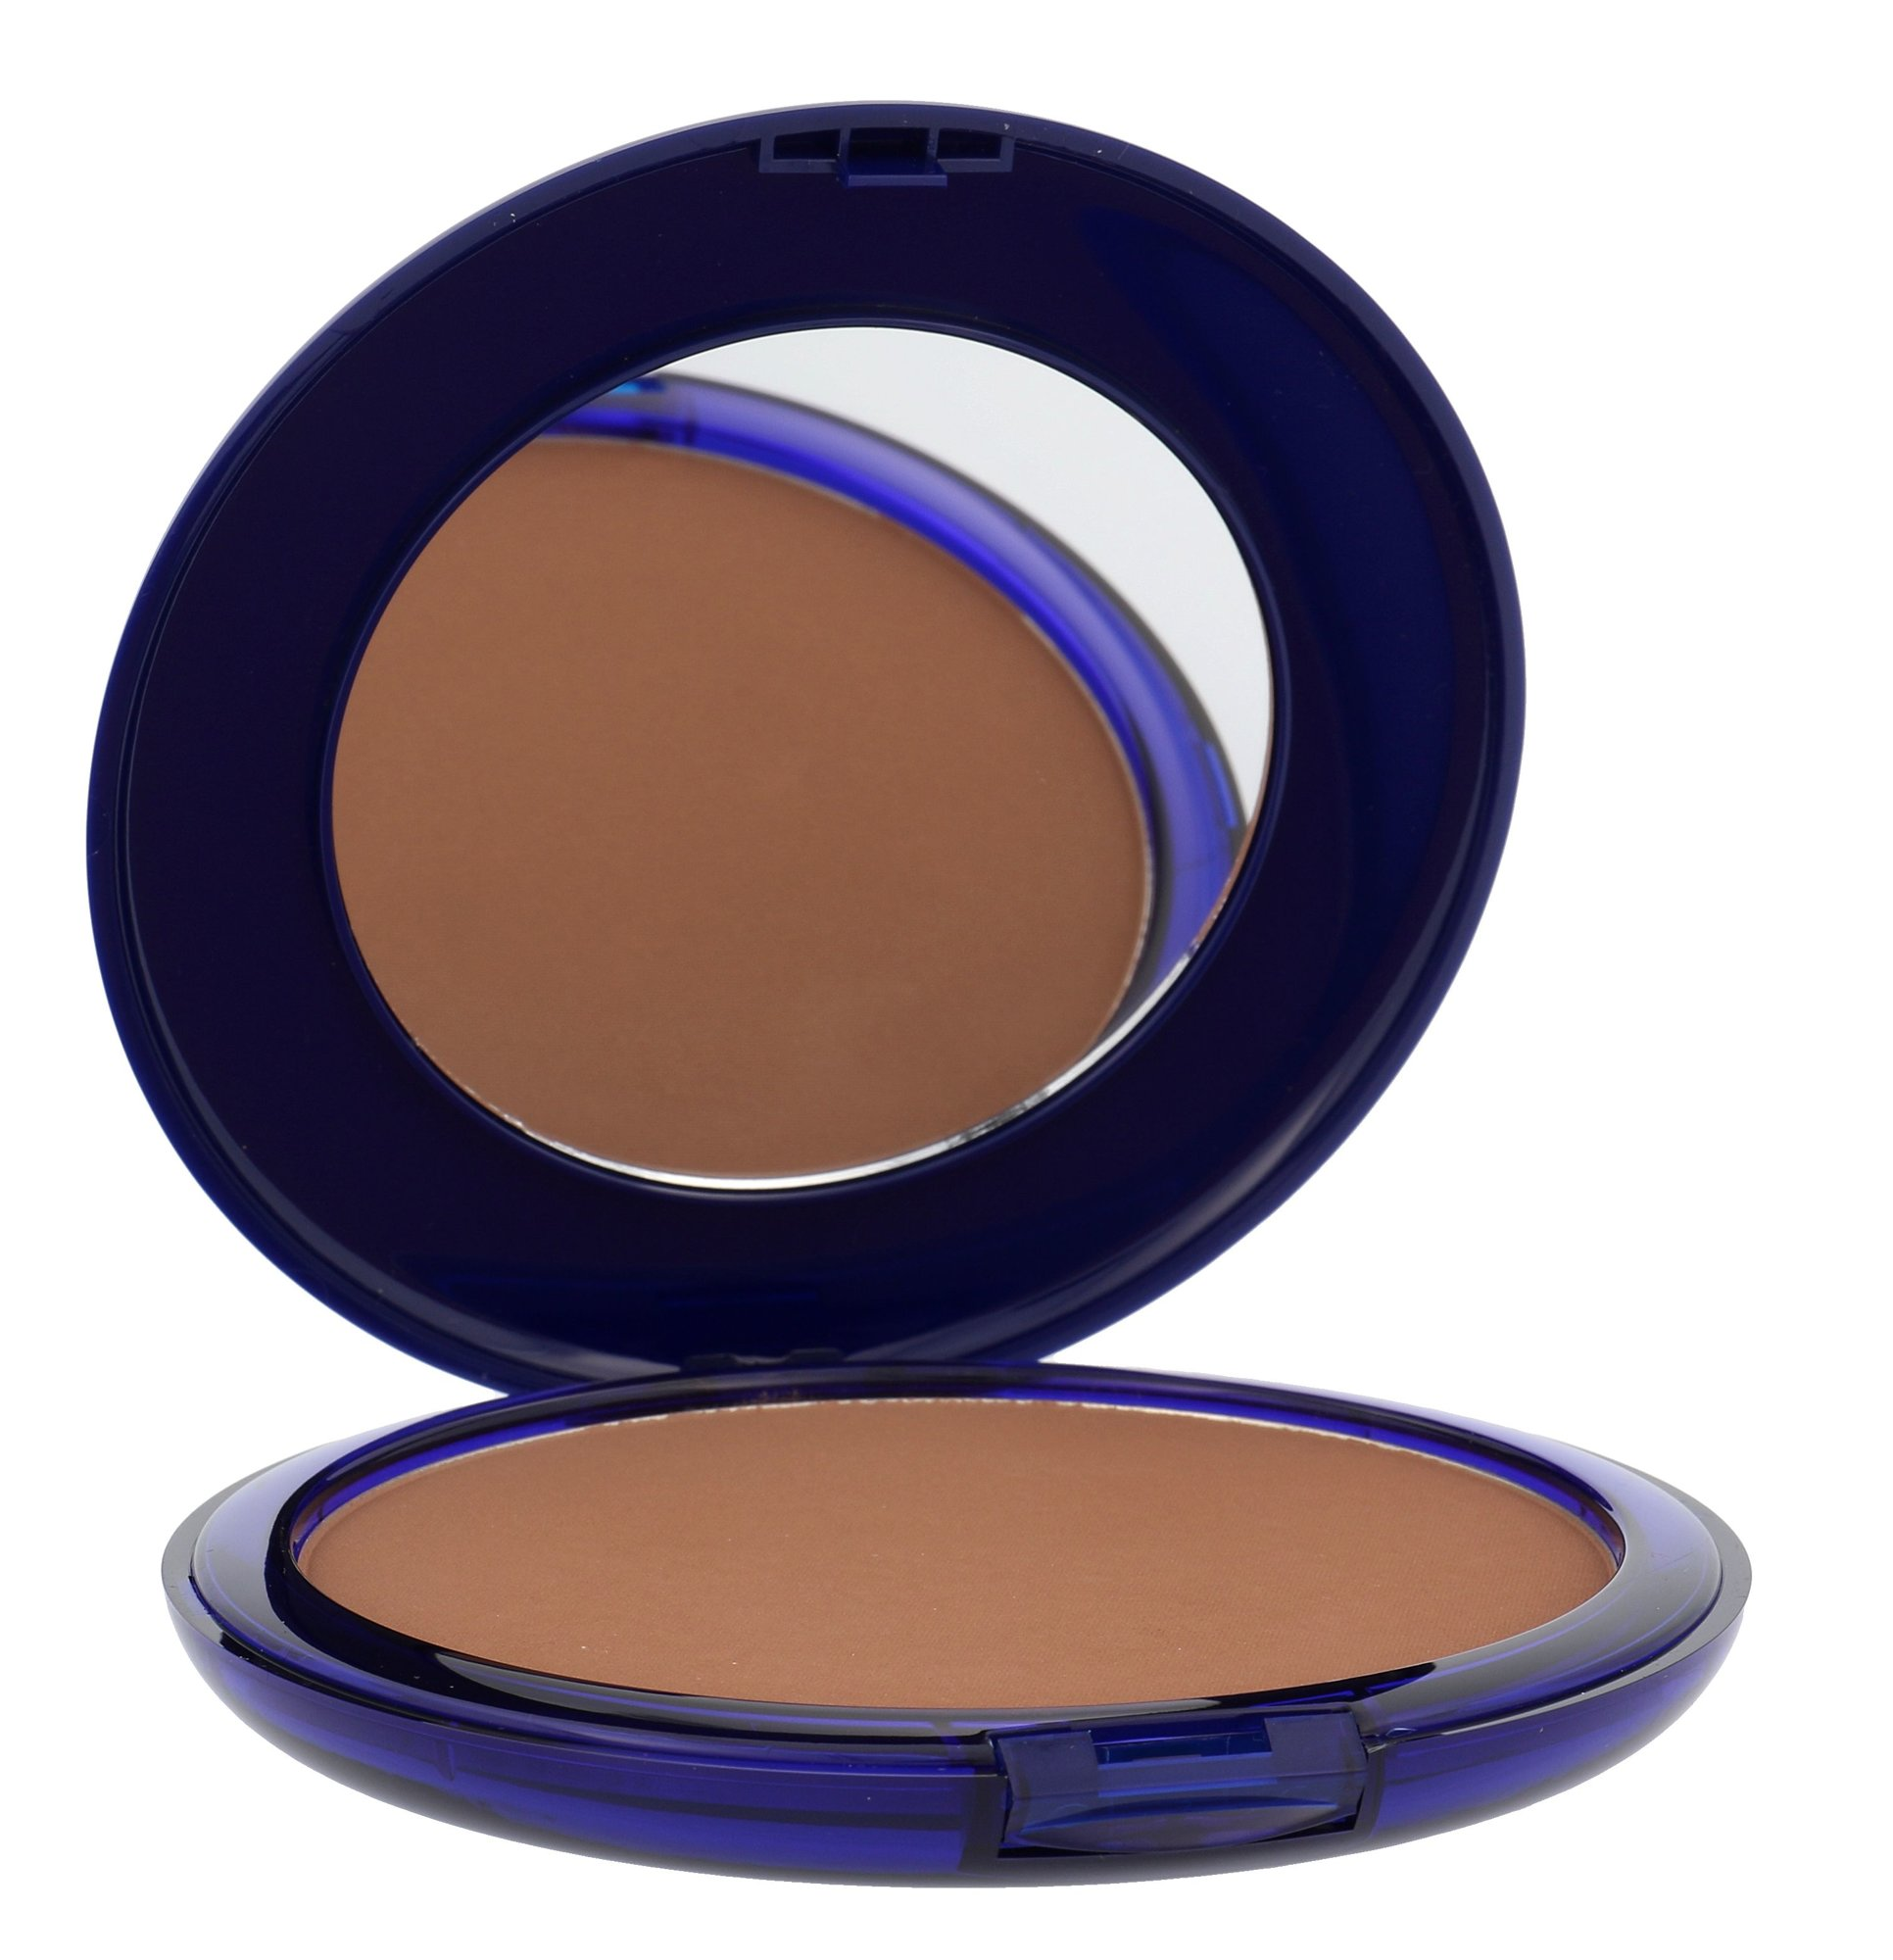 Orlane Bronzing Pressed Powder Cosmetic 31ml 04 Soleil Ambré